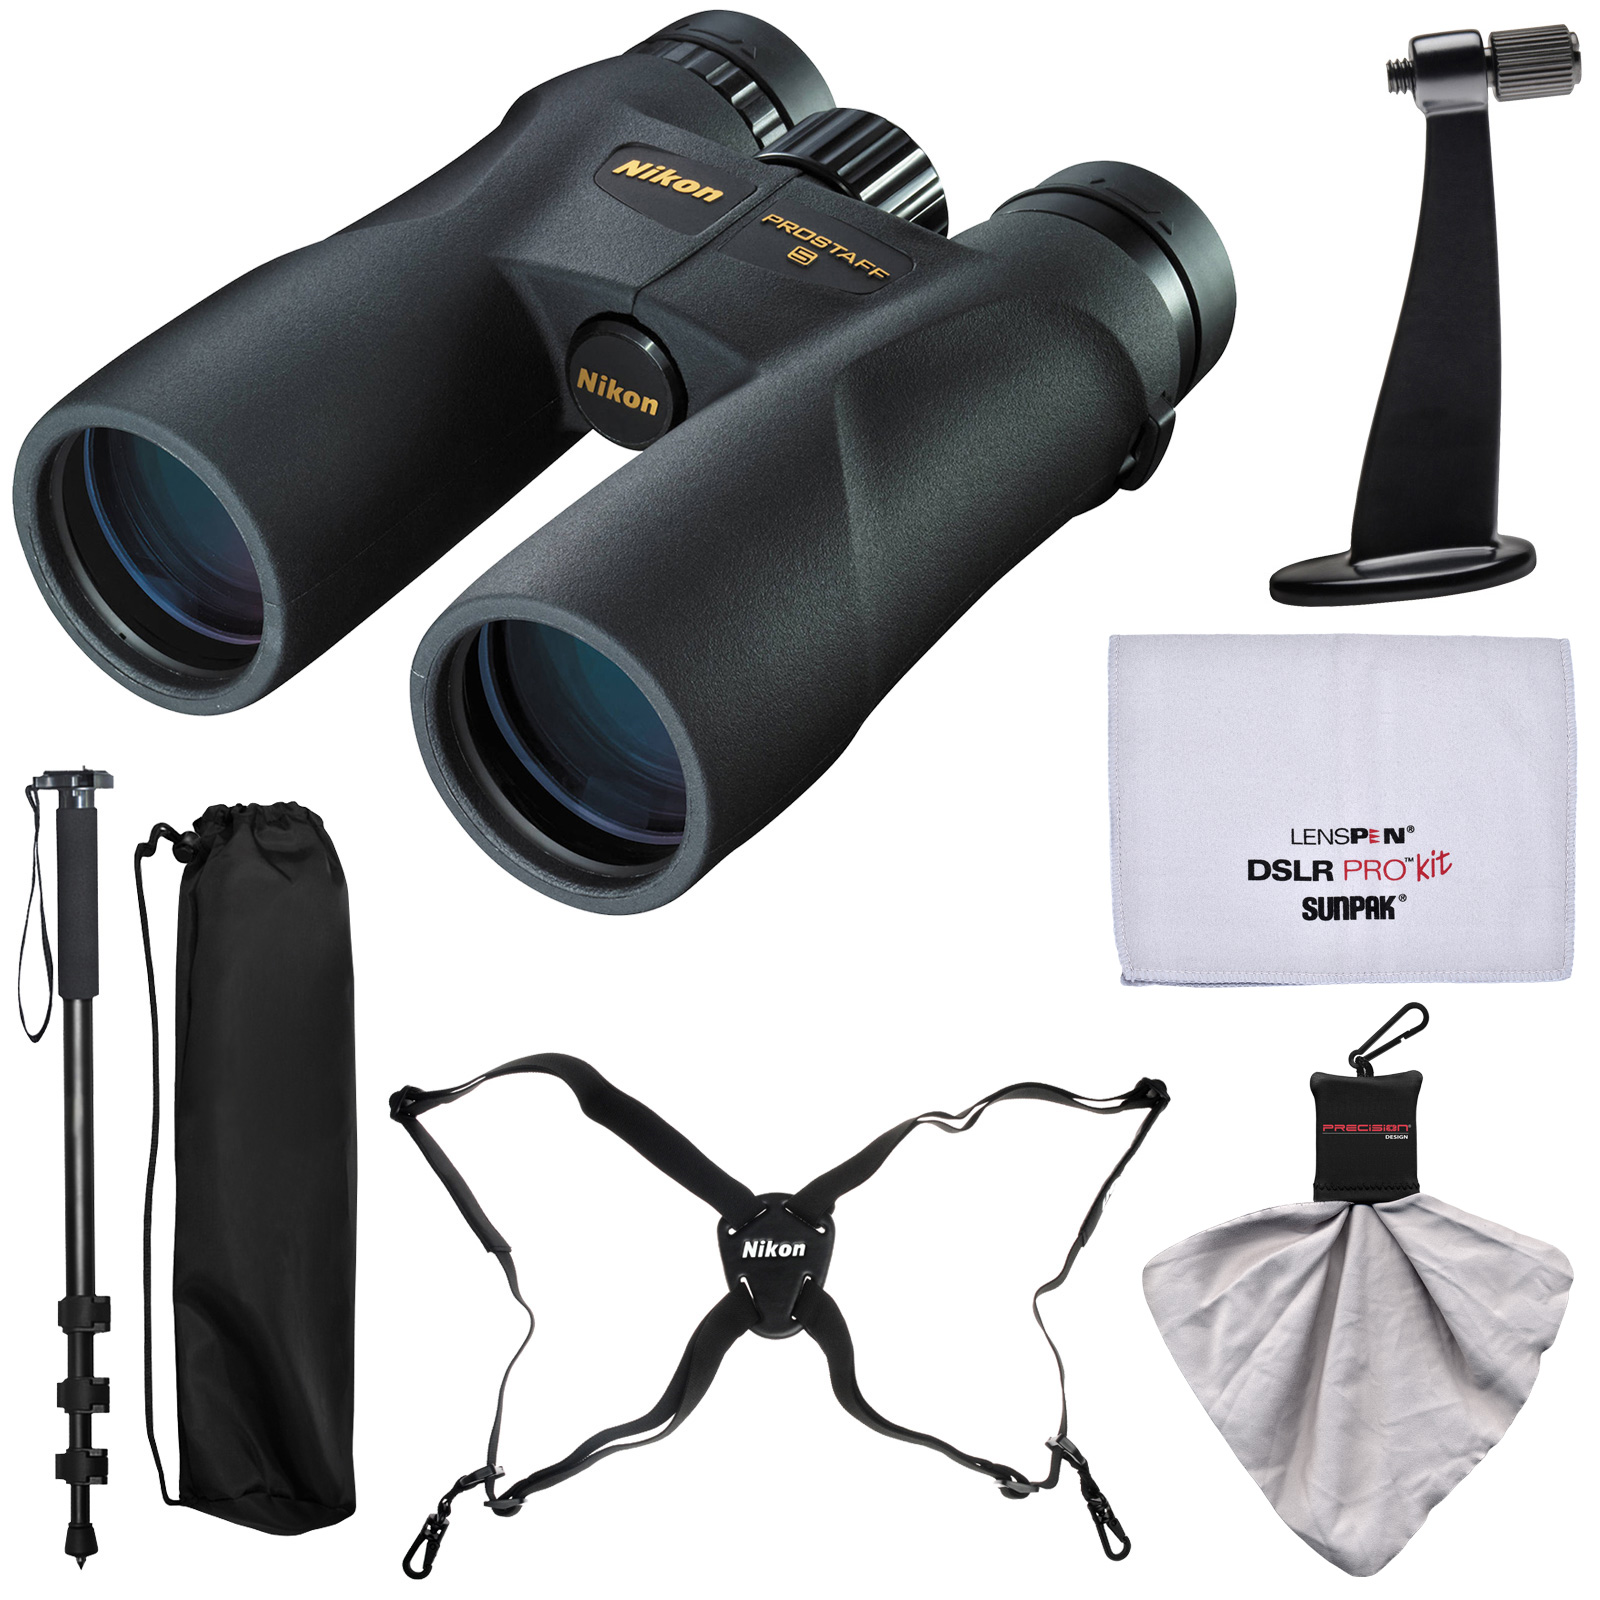 Nikon Prostaff 5 12x50 ATB Waterproof / Fogproof Binoculars with Case + Harness + Smartphone Adapter + Cleaning Kit